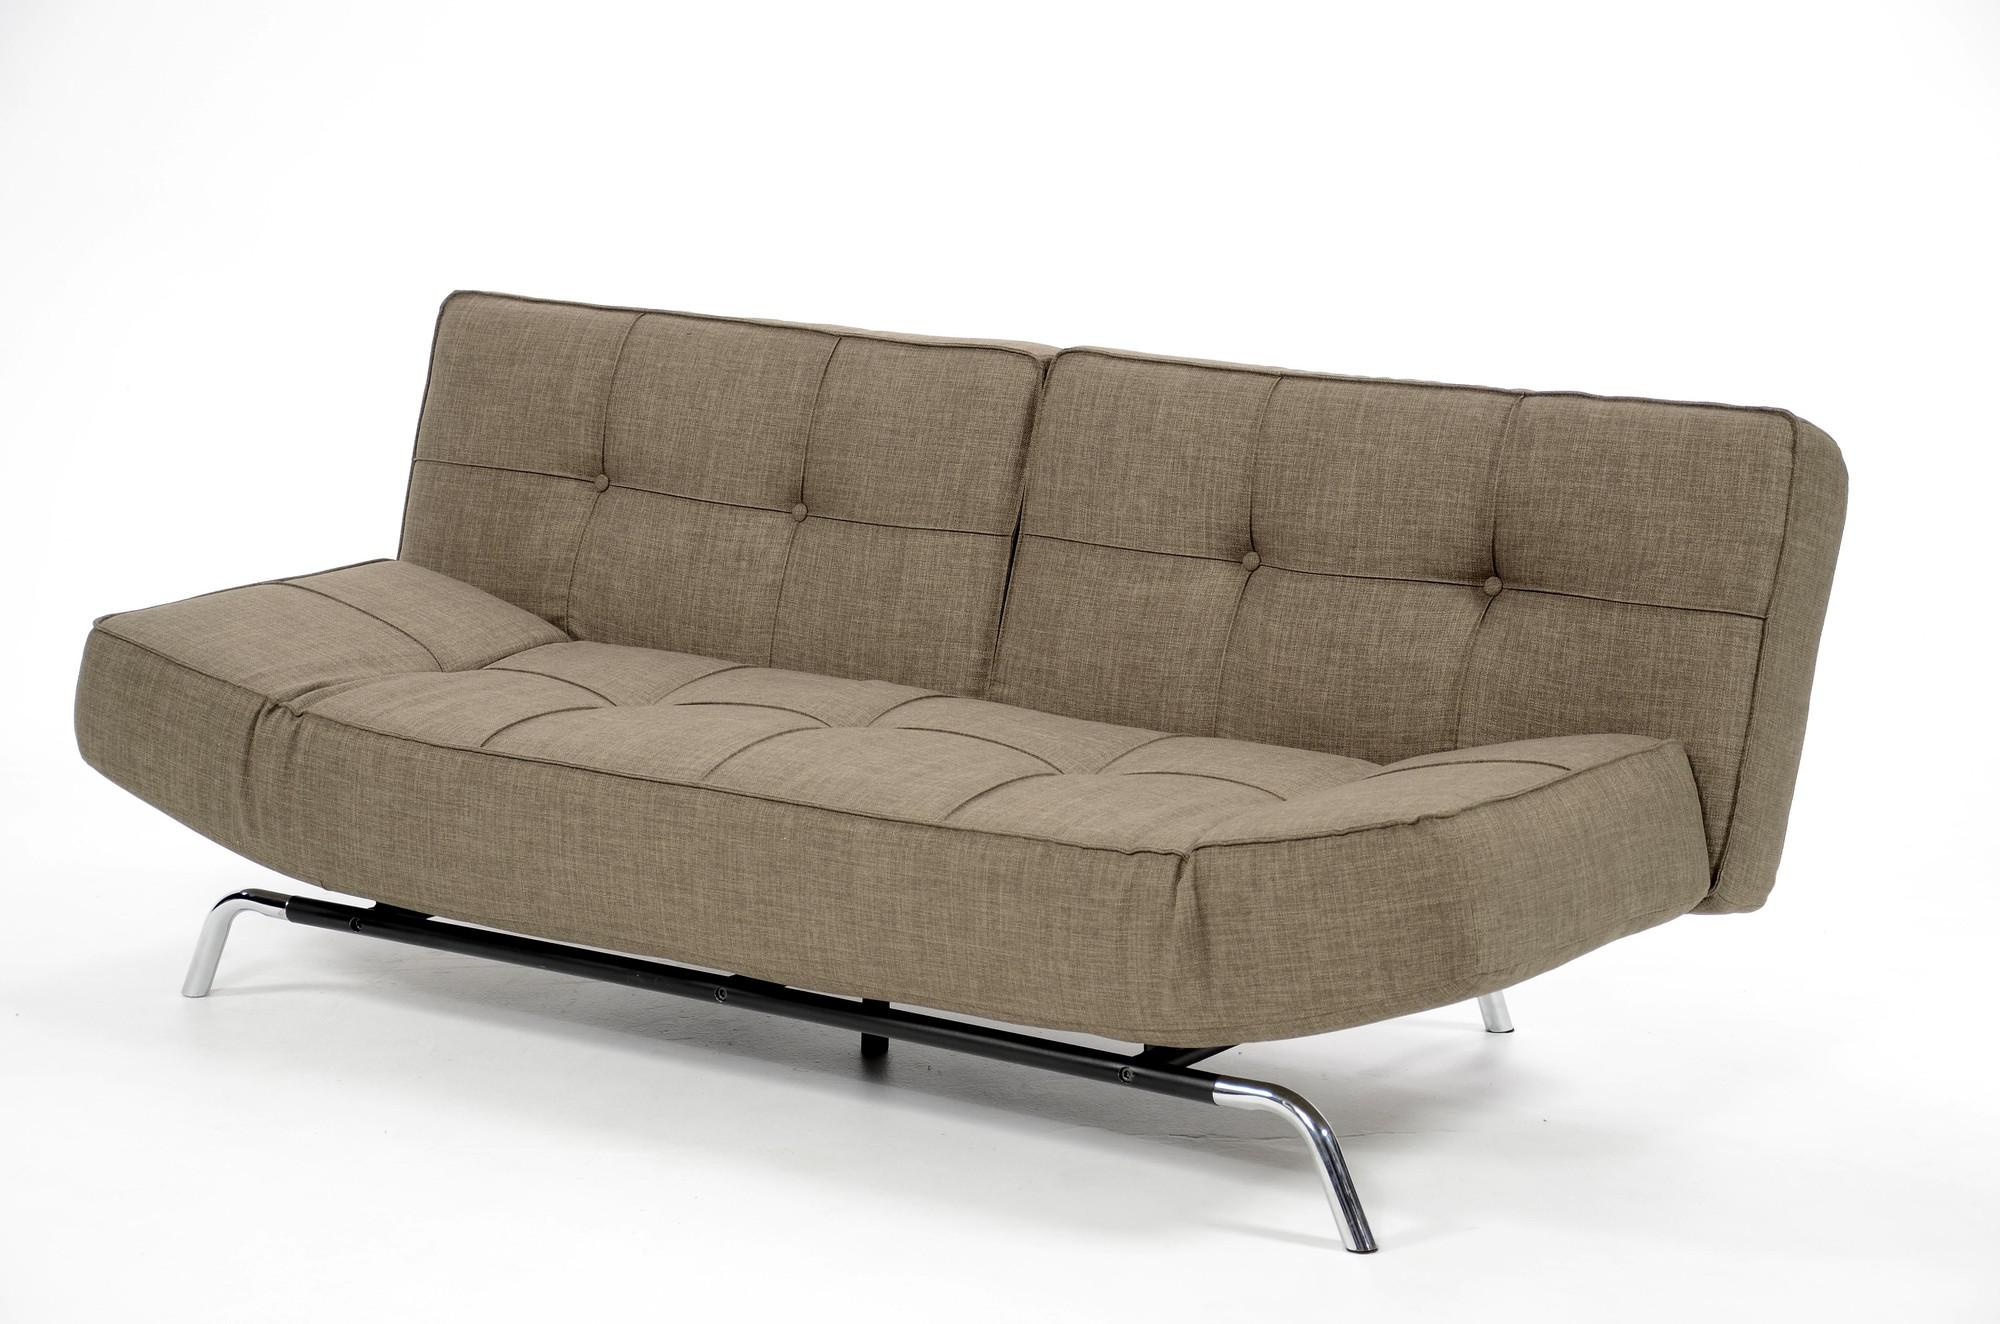 leather sleeper sofa. 2018 6a009 Recliner Bed, Sofa Leather Lounge Soft Fabric Functional Folding Bed. From Gxf_furniture, $110.56 Sleeper